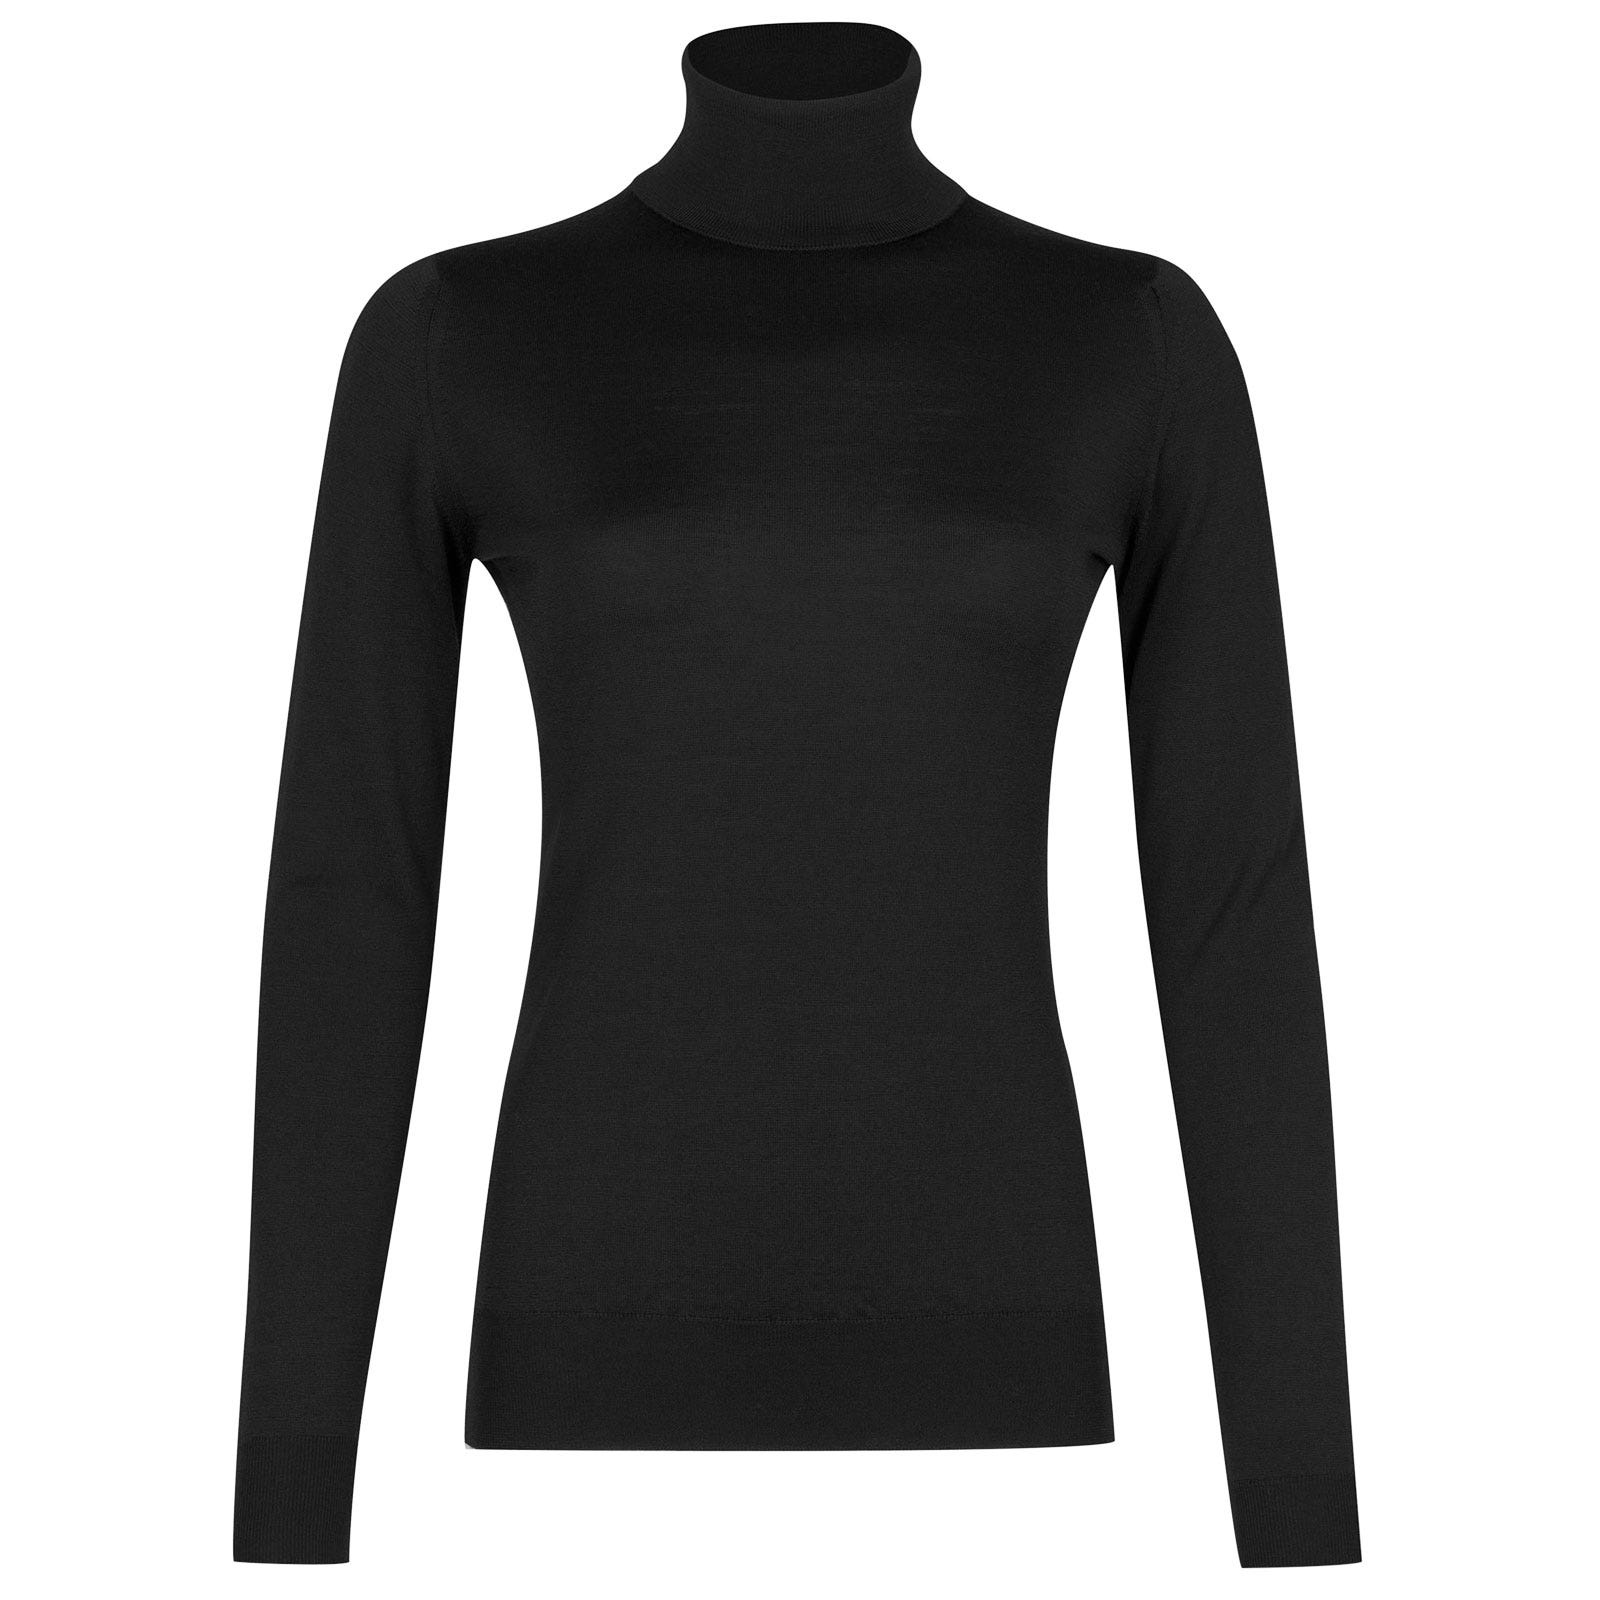 John Smedley Catkin Merino Wool Sweater in Black-M